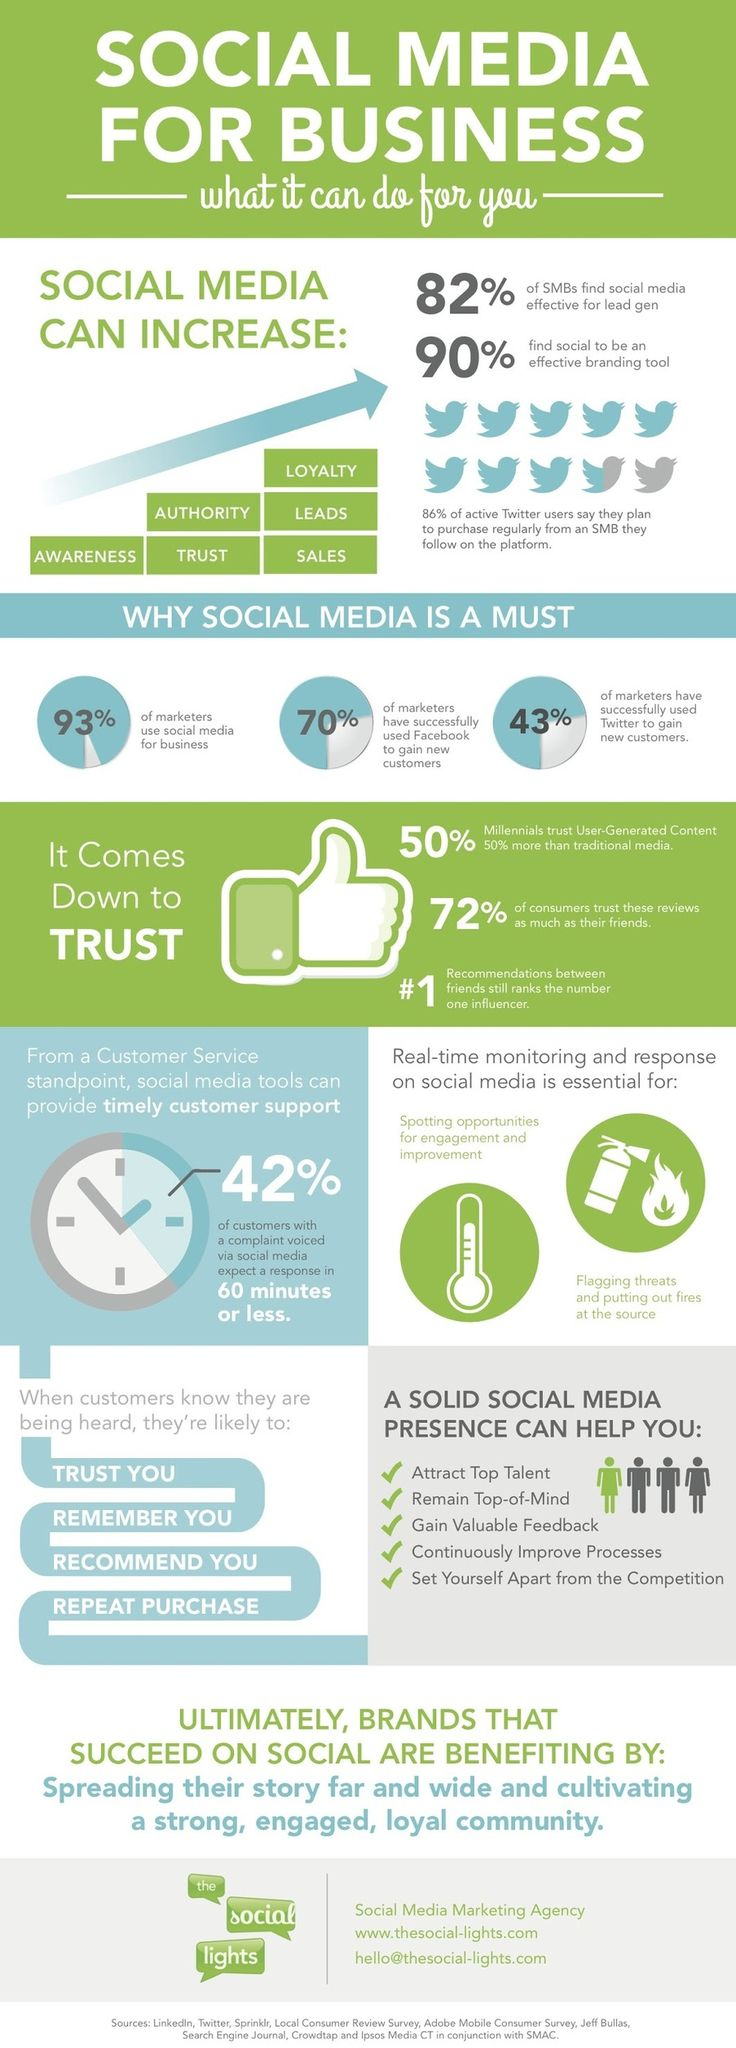 Social Media For Business: What It Can Do For You #infographic